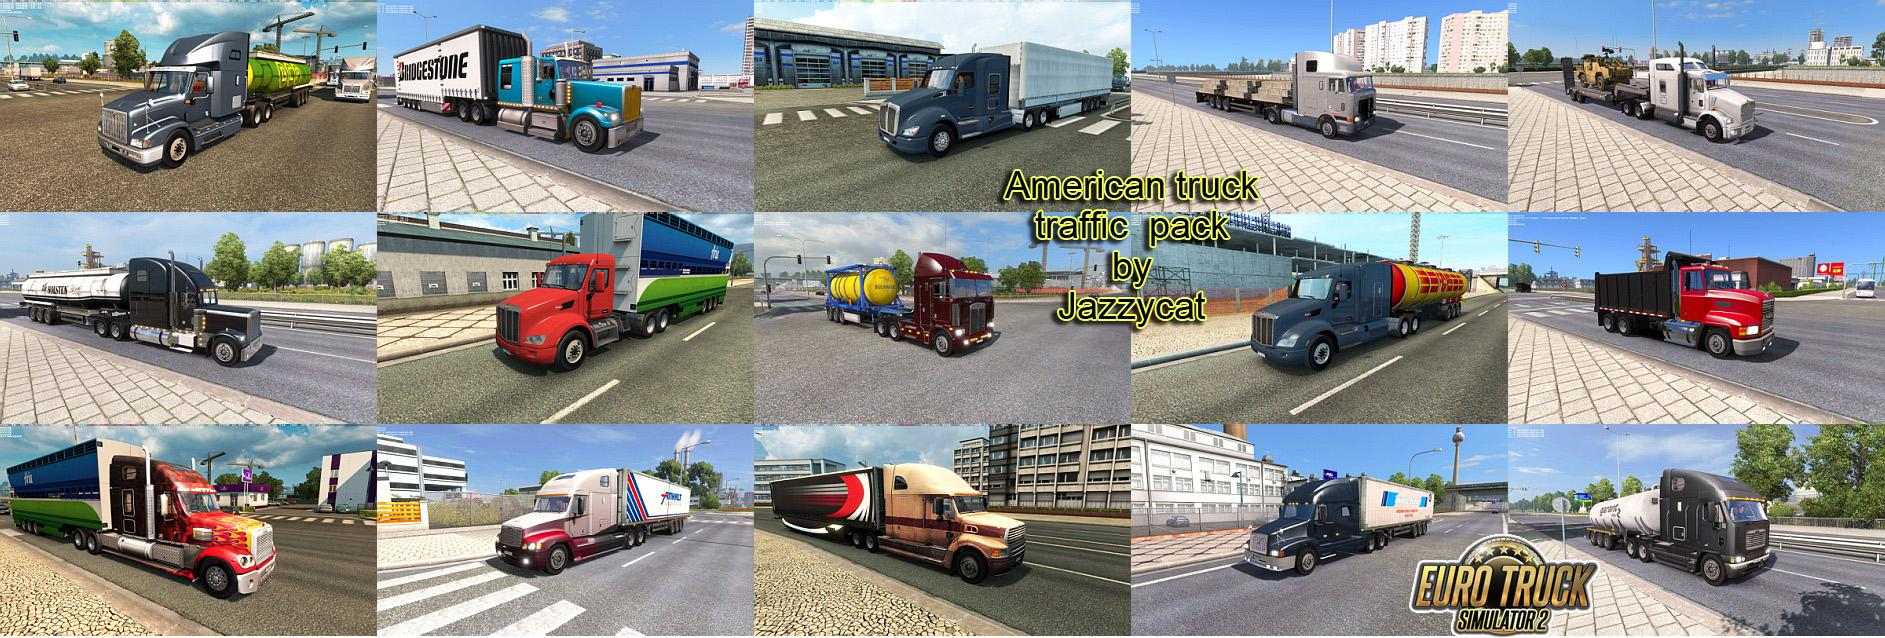 american-truck-traffic-pack-by-jazzycat-v1-3_1